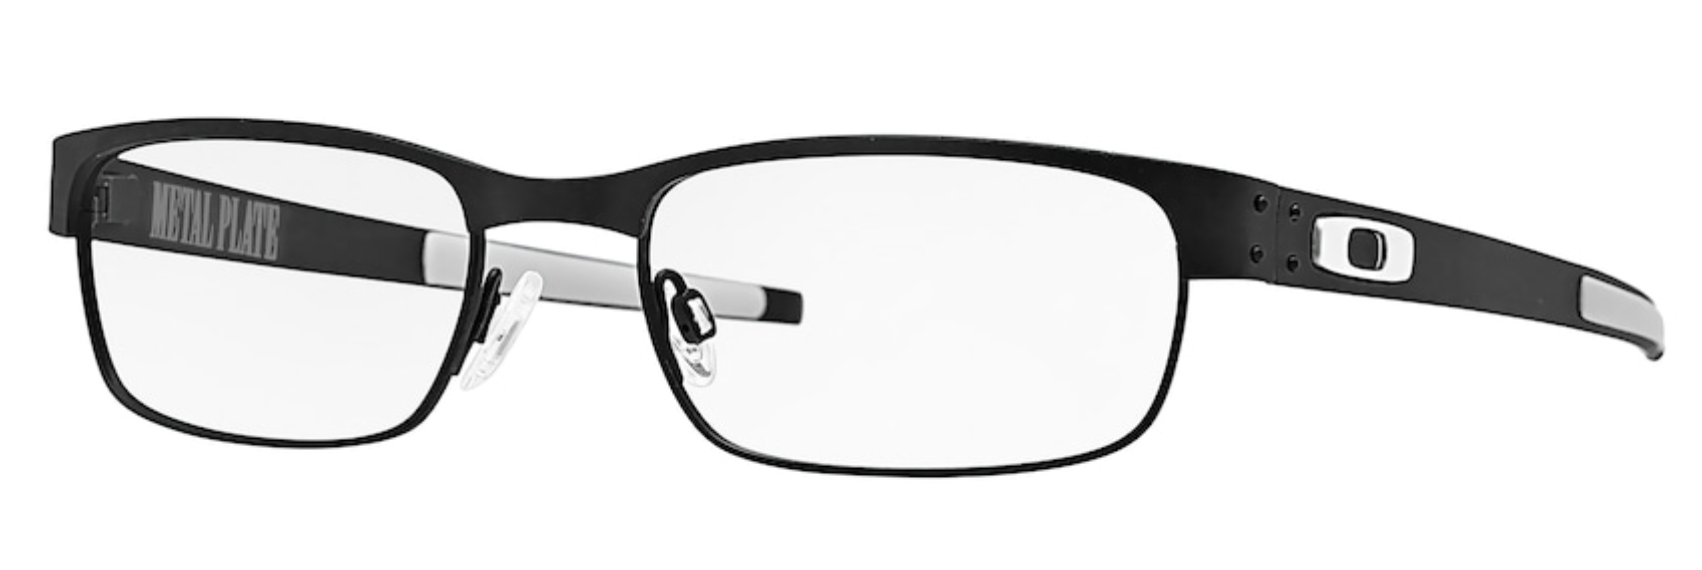 Oakley OX5038 Rectangle Eyeglasses